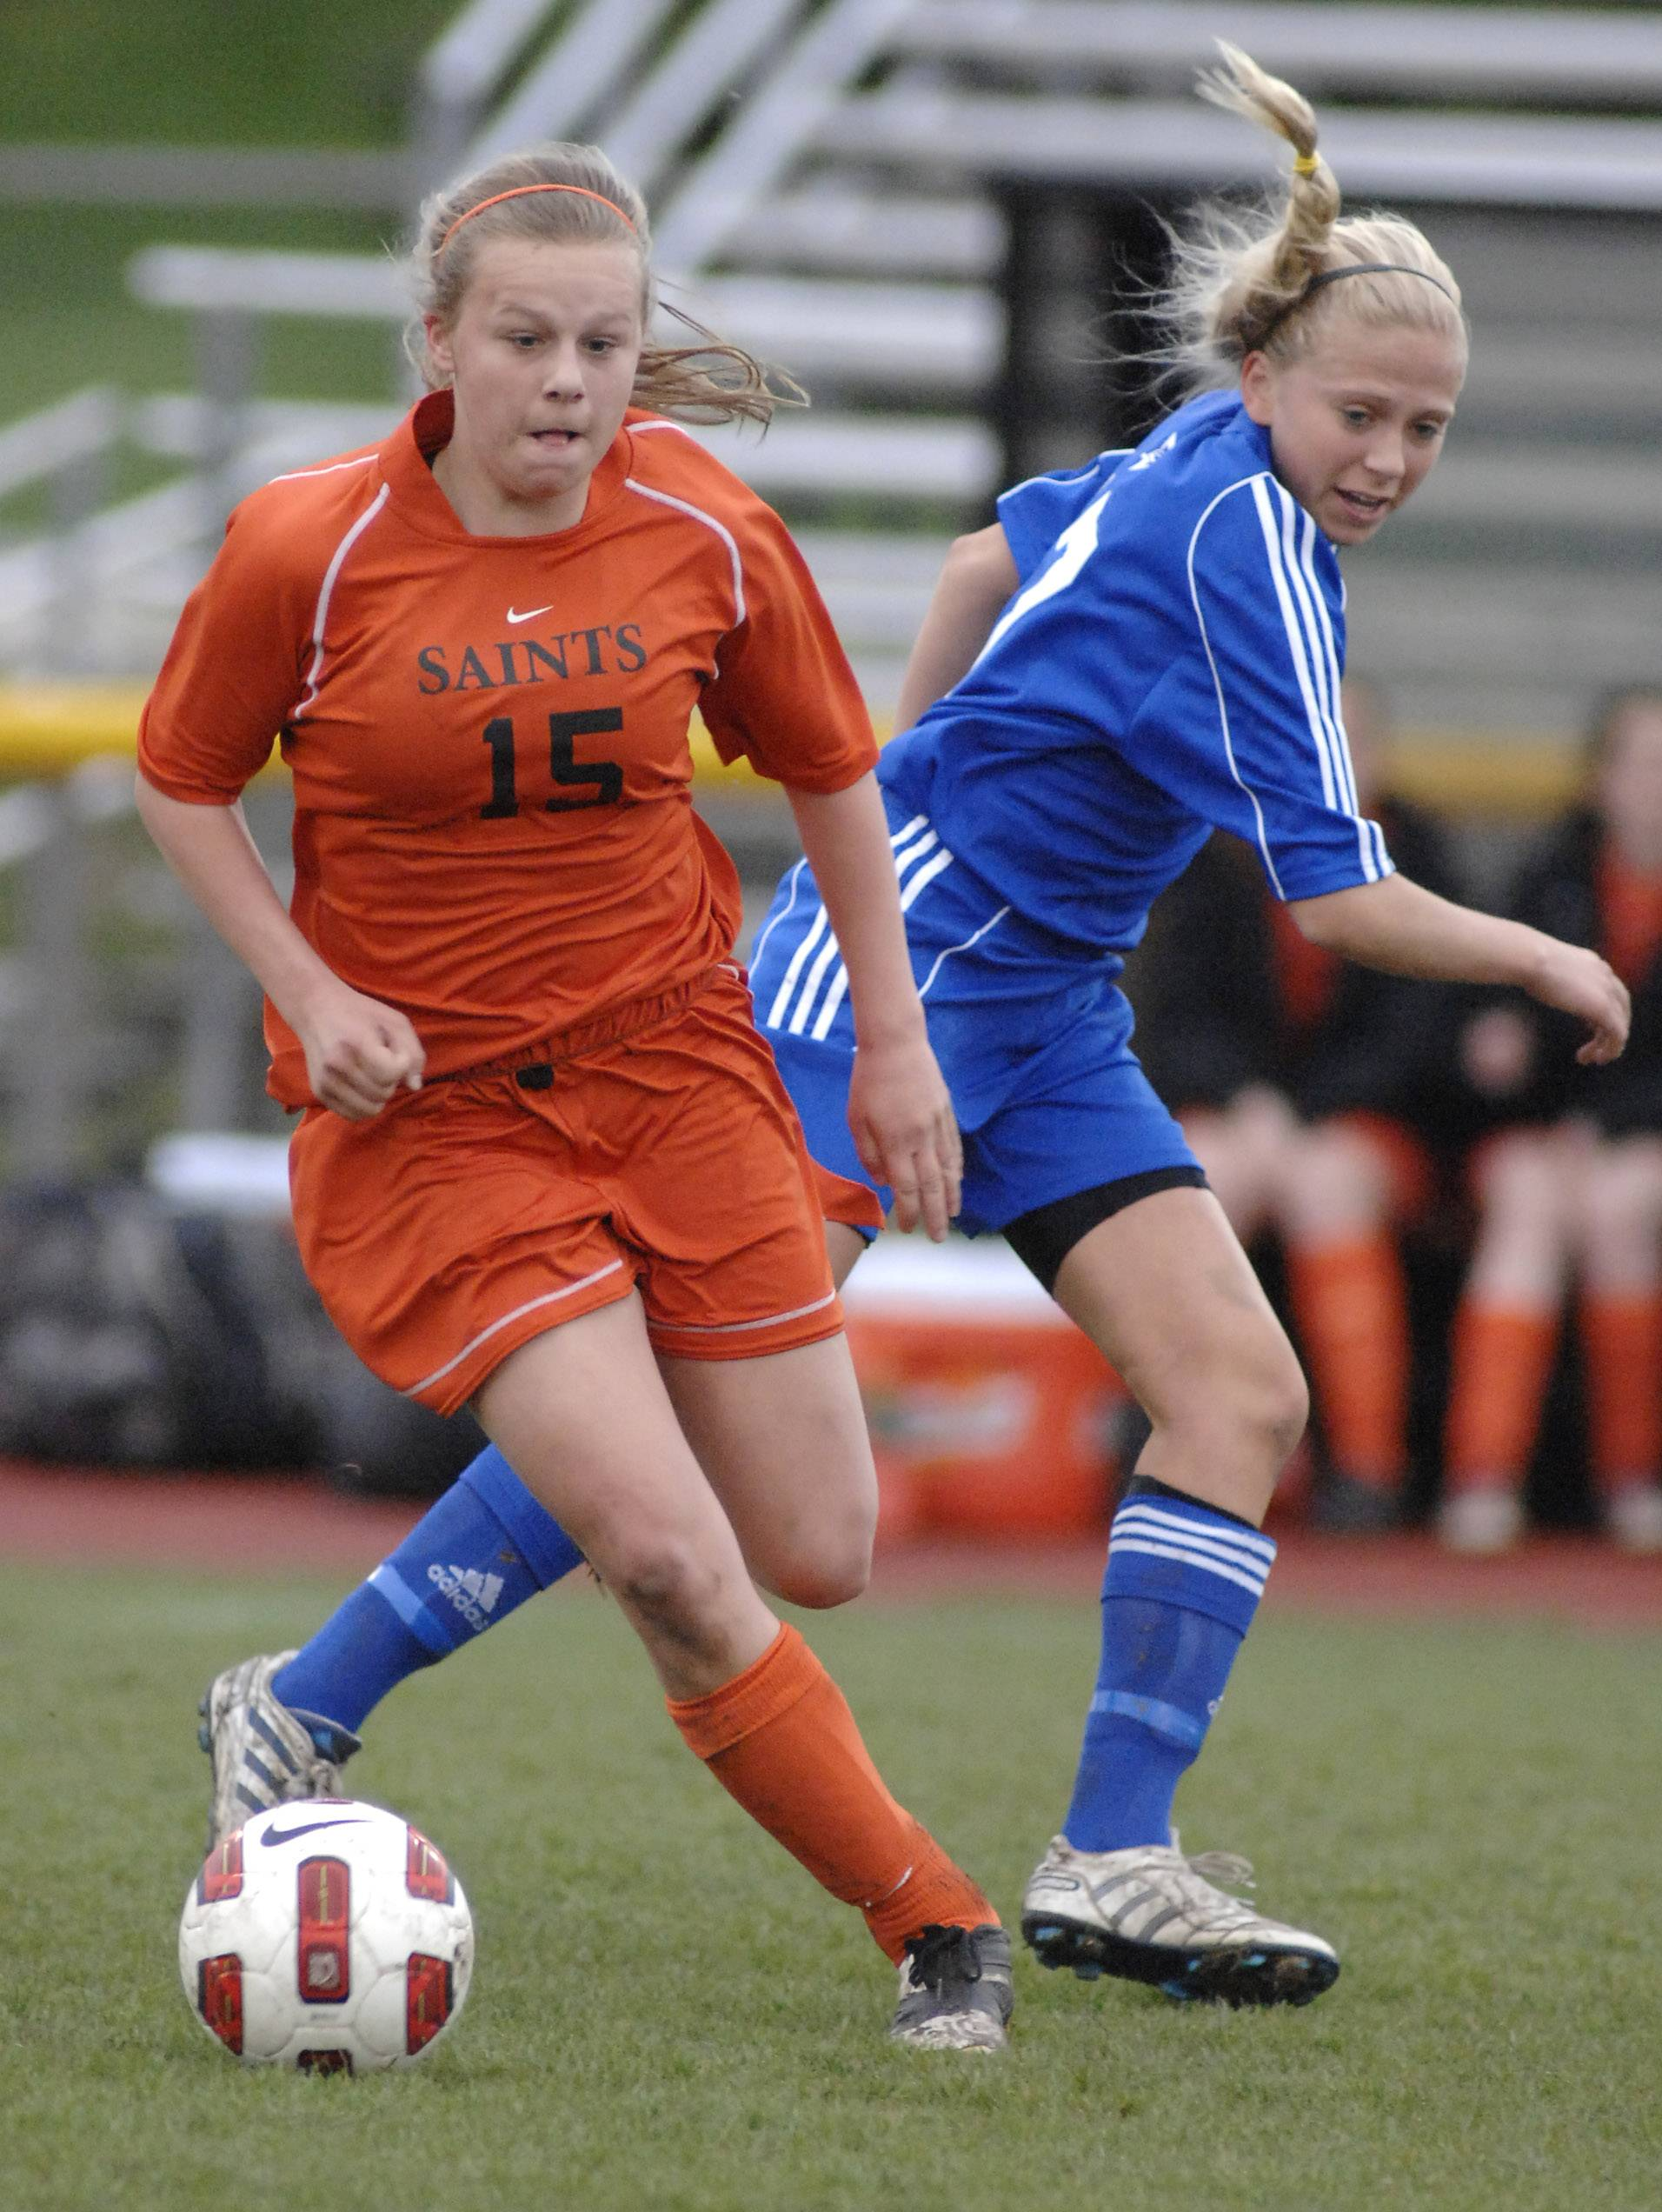 Laura Stoecker/lstoecker@dailyherald.com ¬ St. Charles East's Amanda Hilton and St. Charles North's Kelly Manski in the first half on Tuesday, April 26.